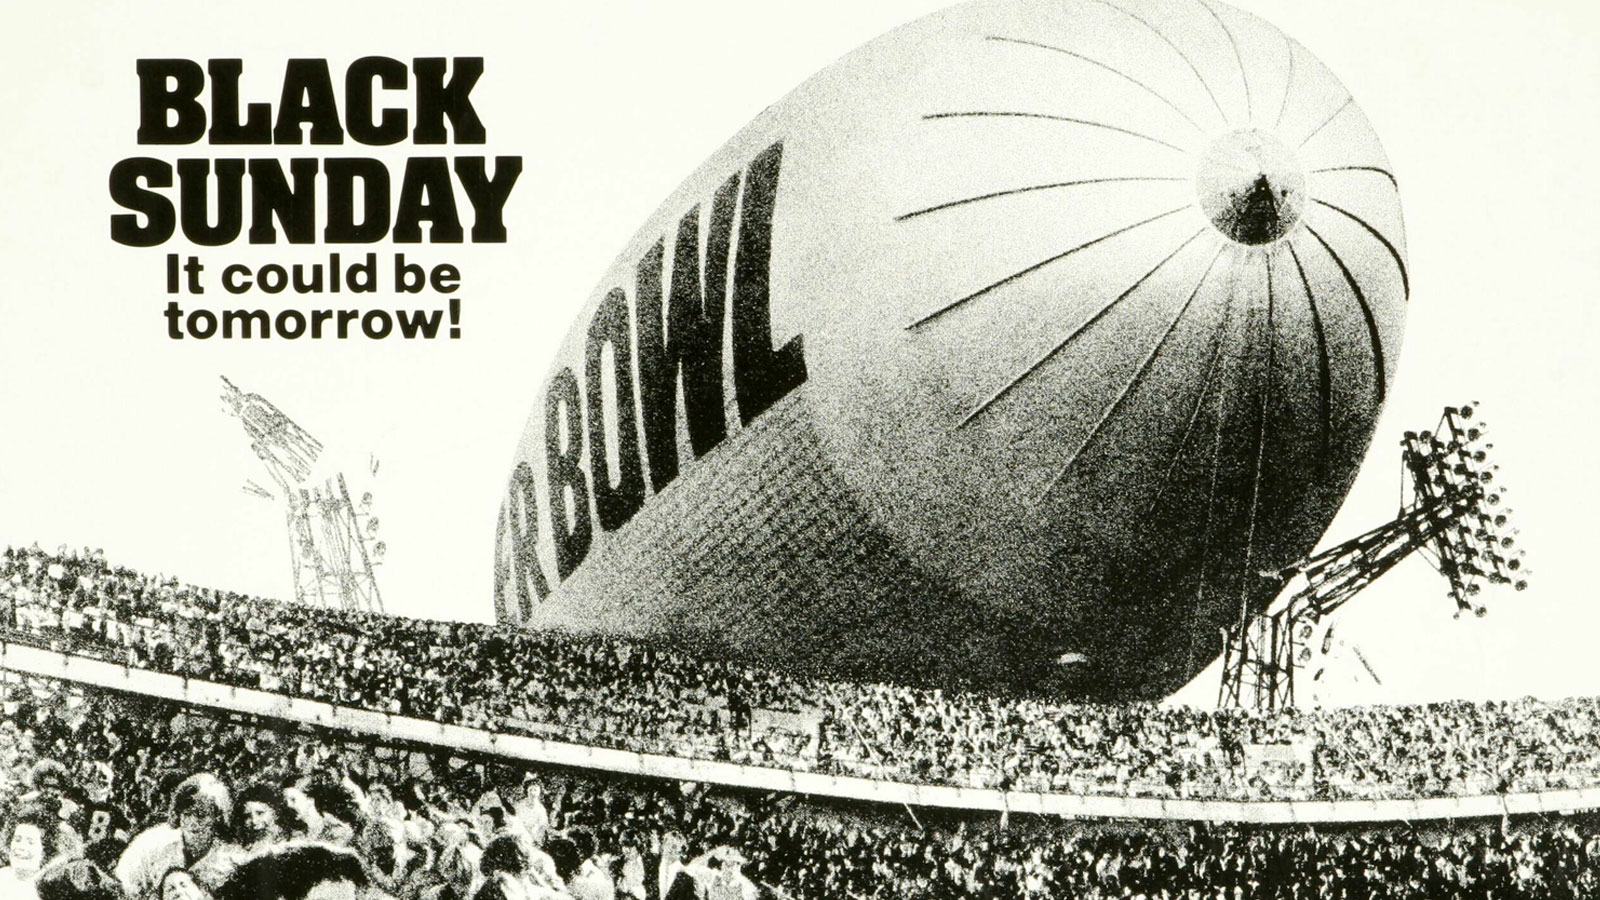 Black Sunday Blimp Image